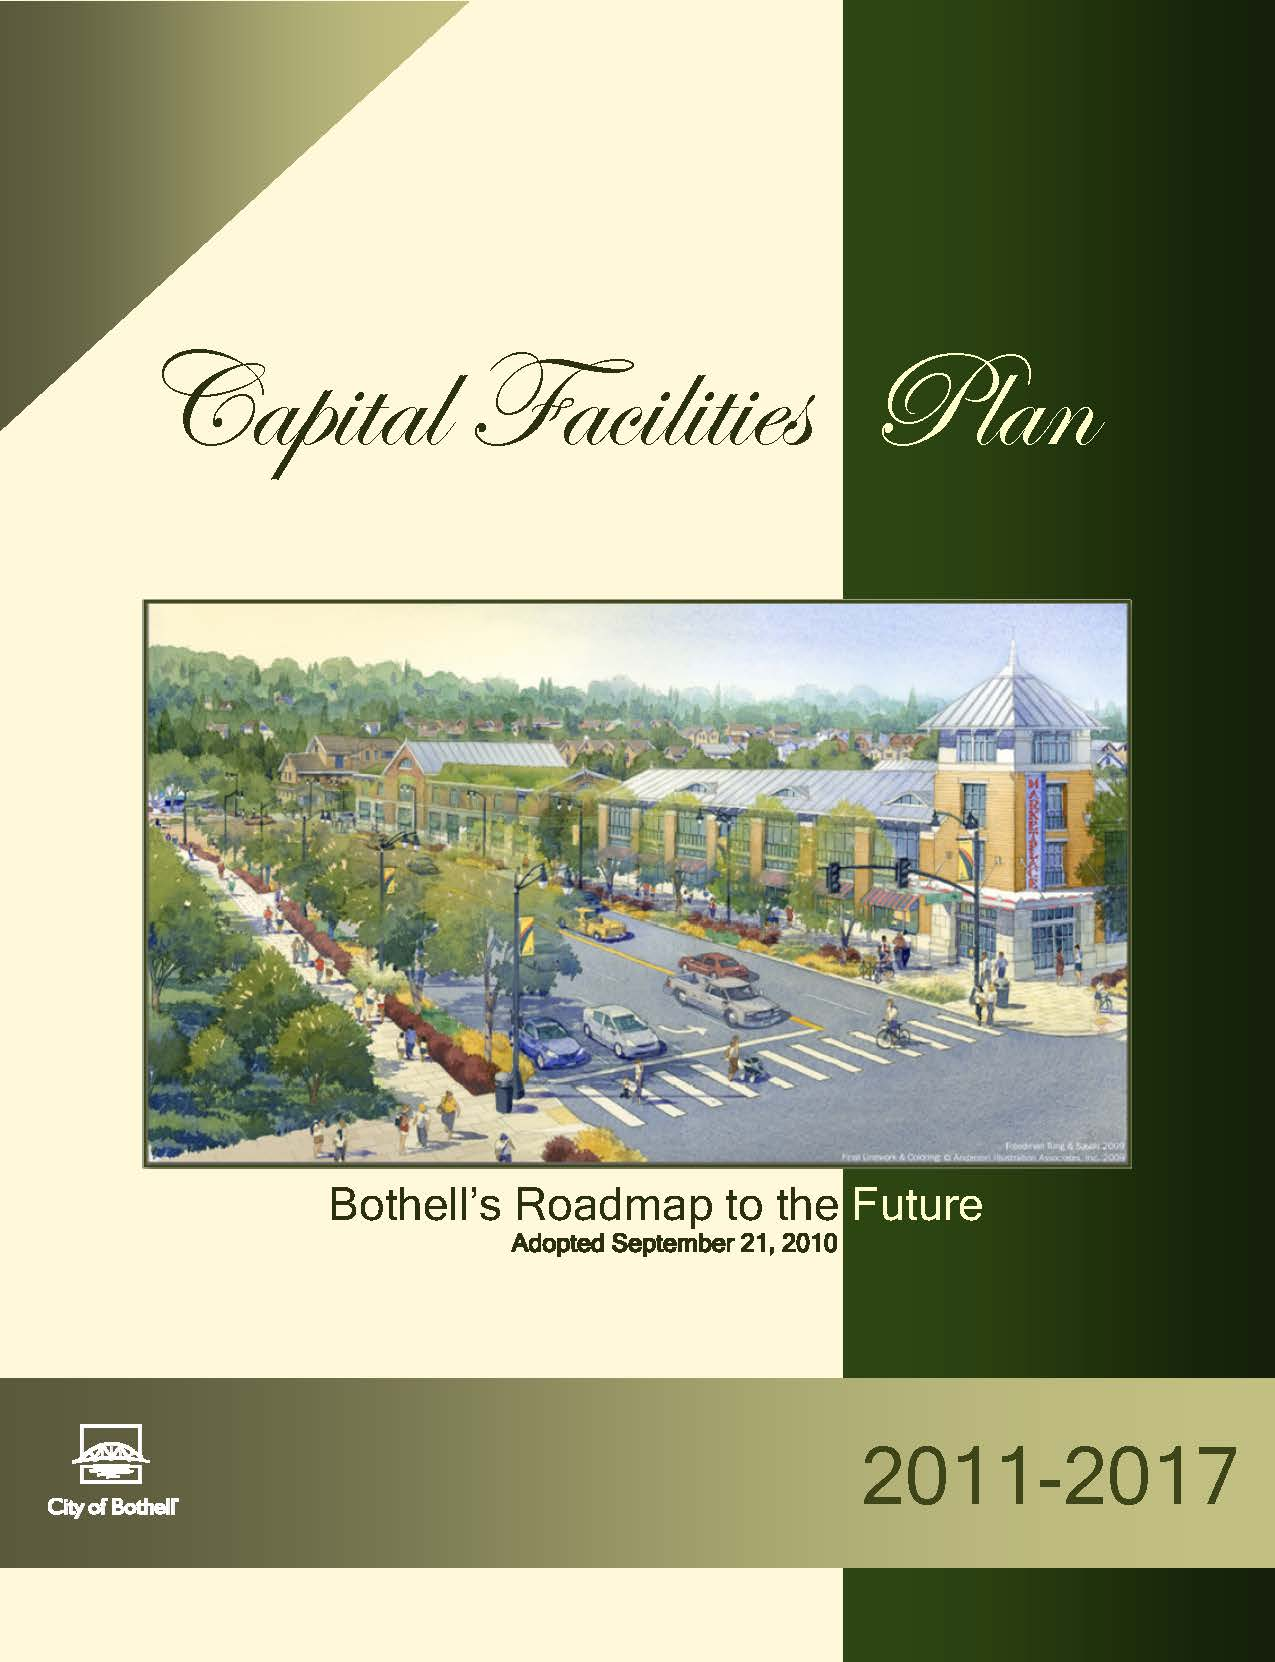 2011-2017 Capital Facilities Plan Photo